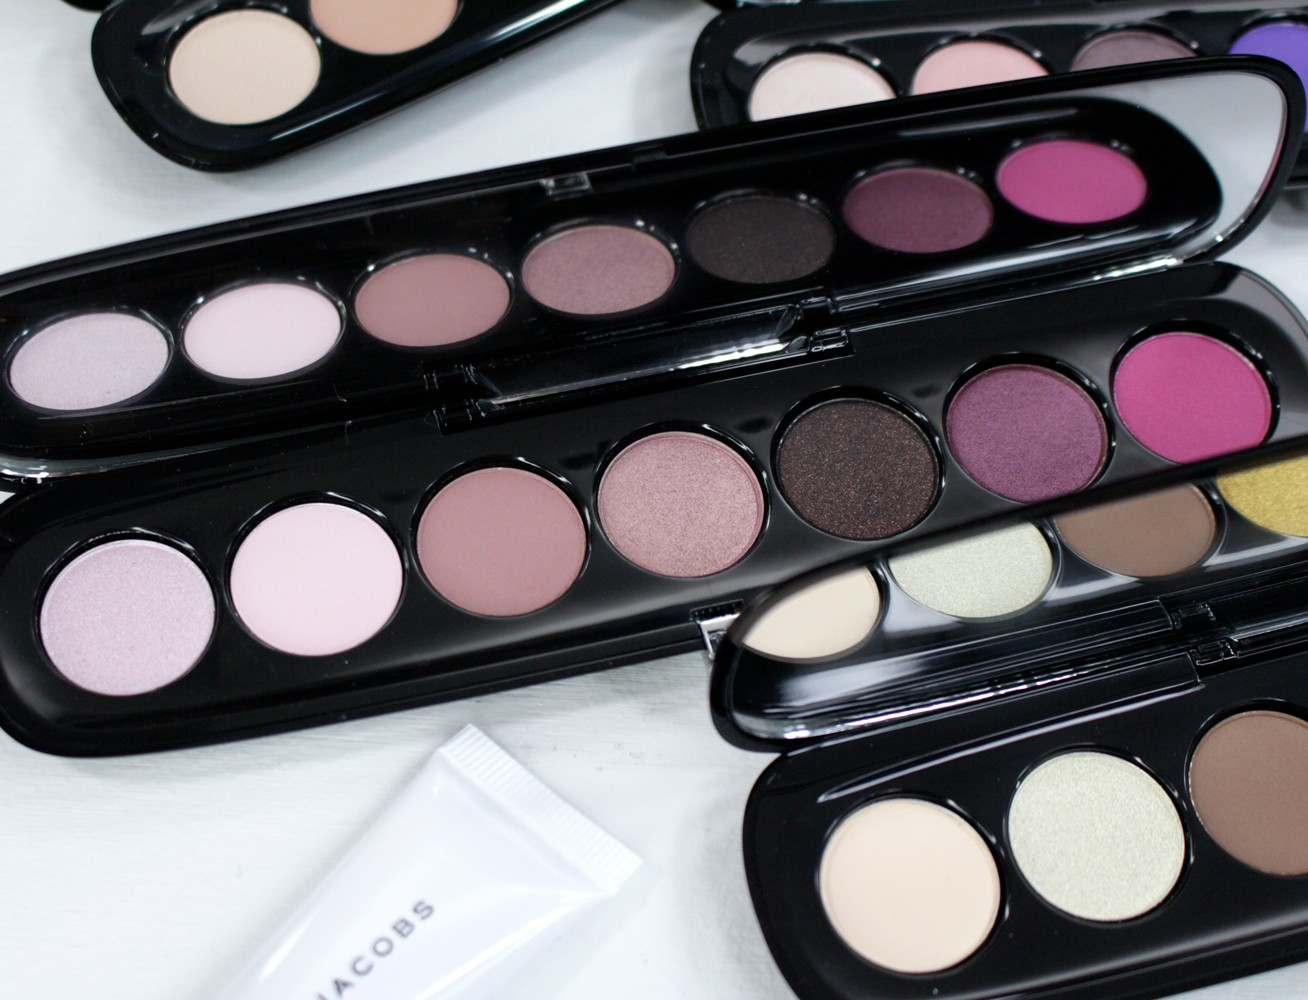 Marc Jacobs Beauty Eye Conic Eyeshadow Palette Provocouture